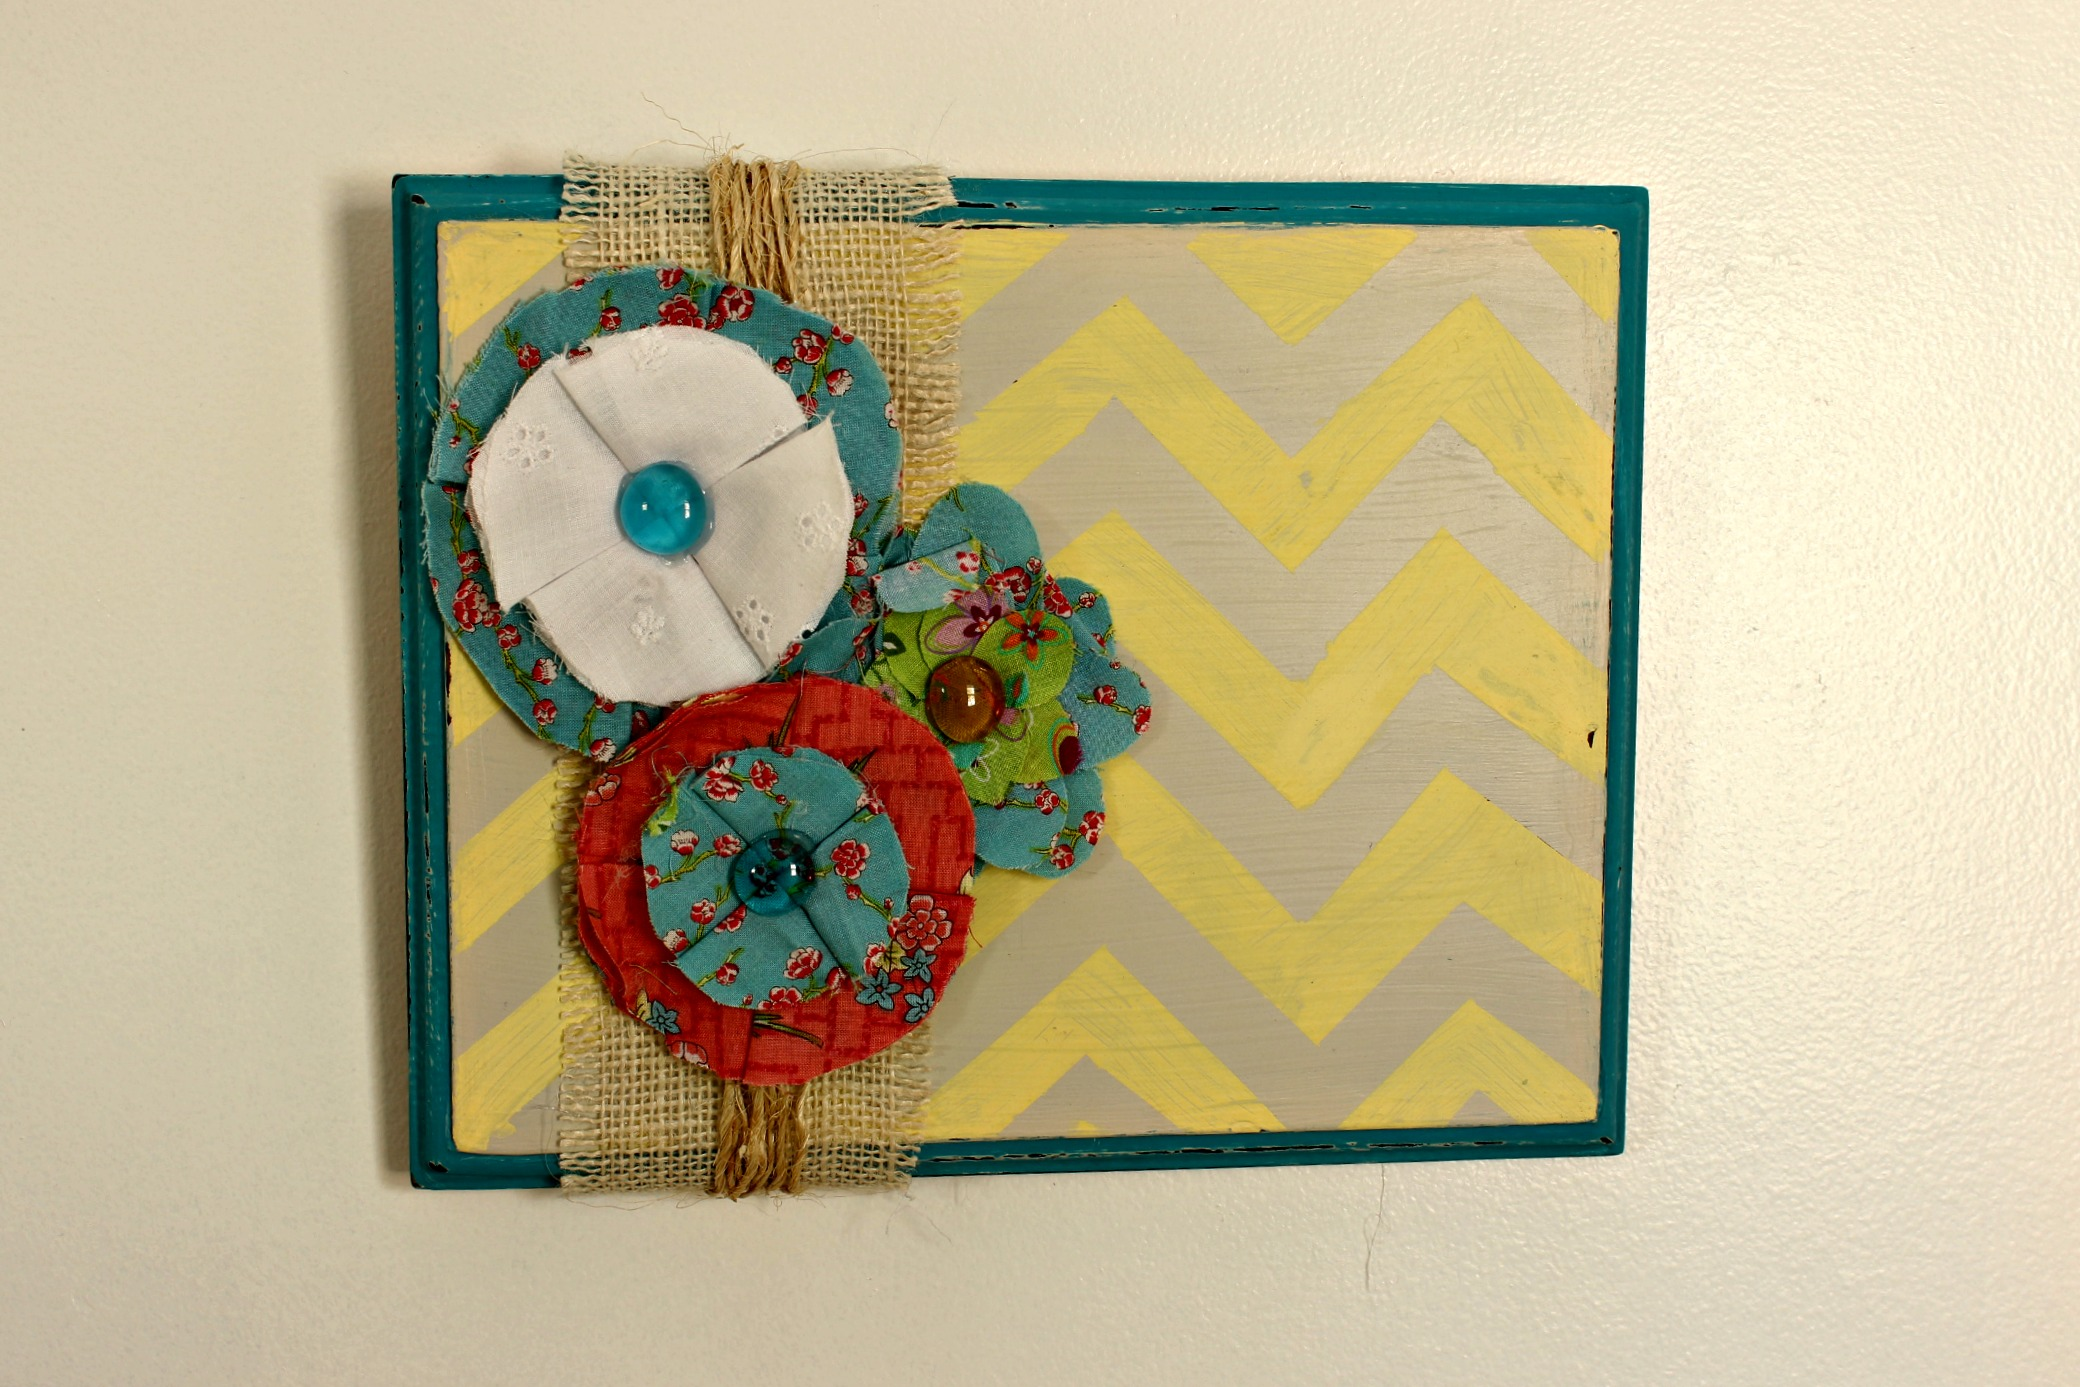 Teal Flower Wall Hanging.DIY: Plastic Spoon Flower Wall Hanging ...